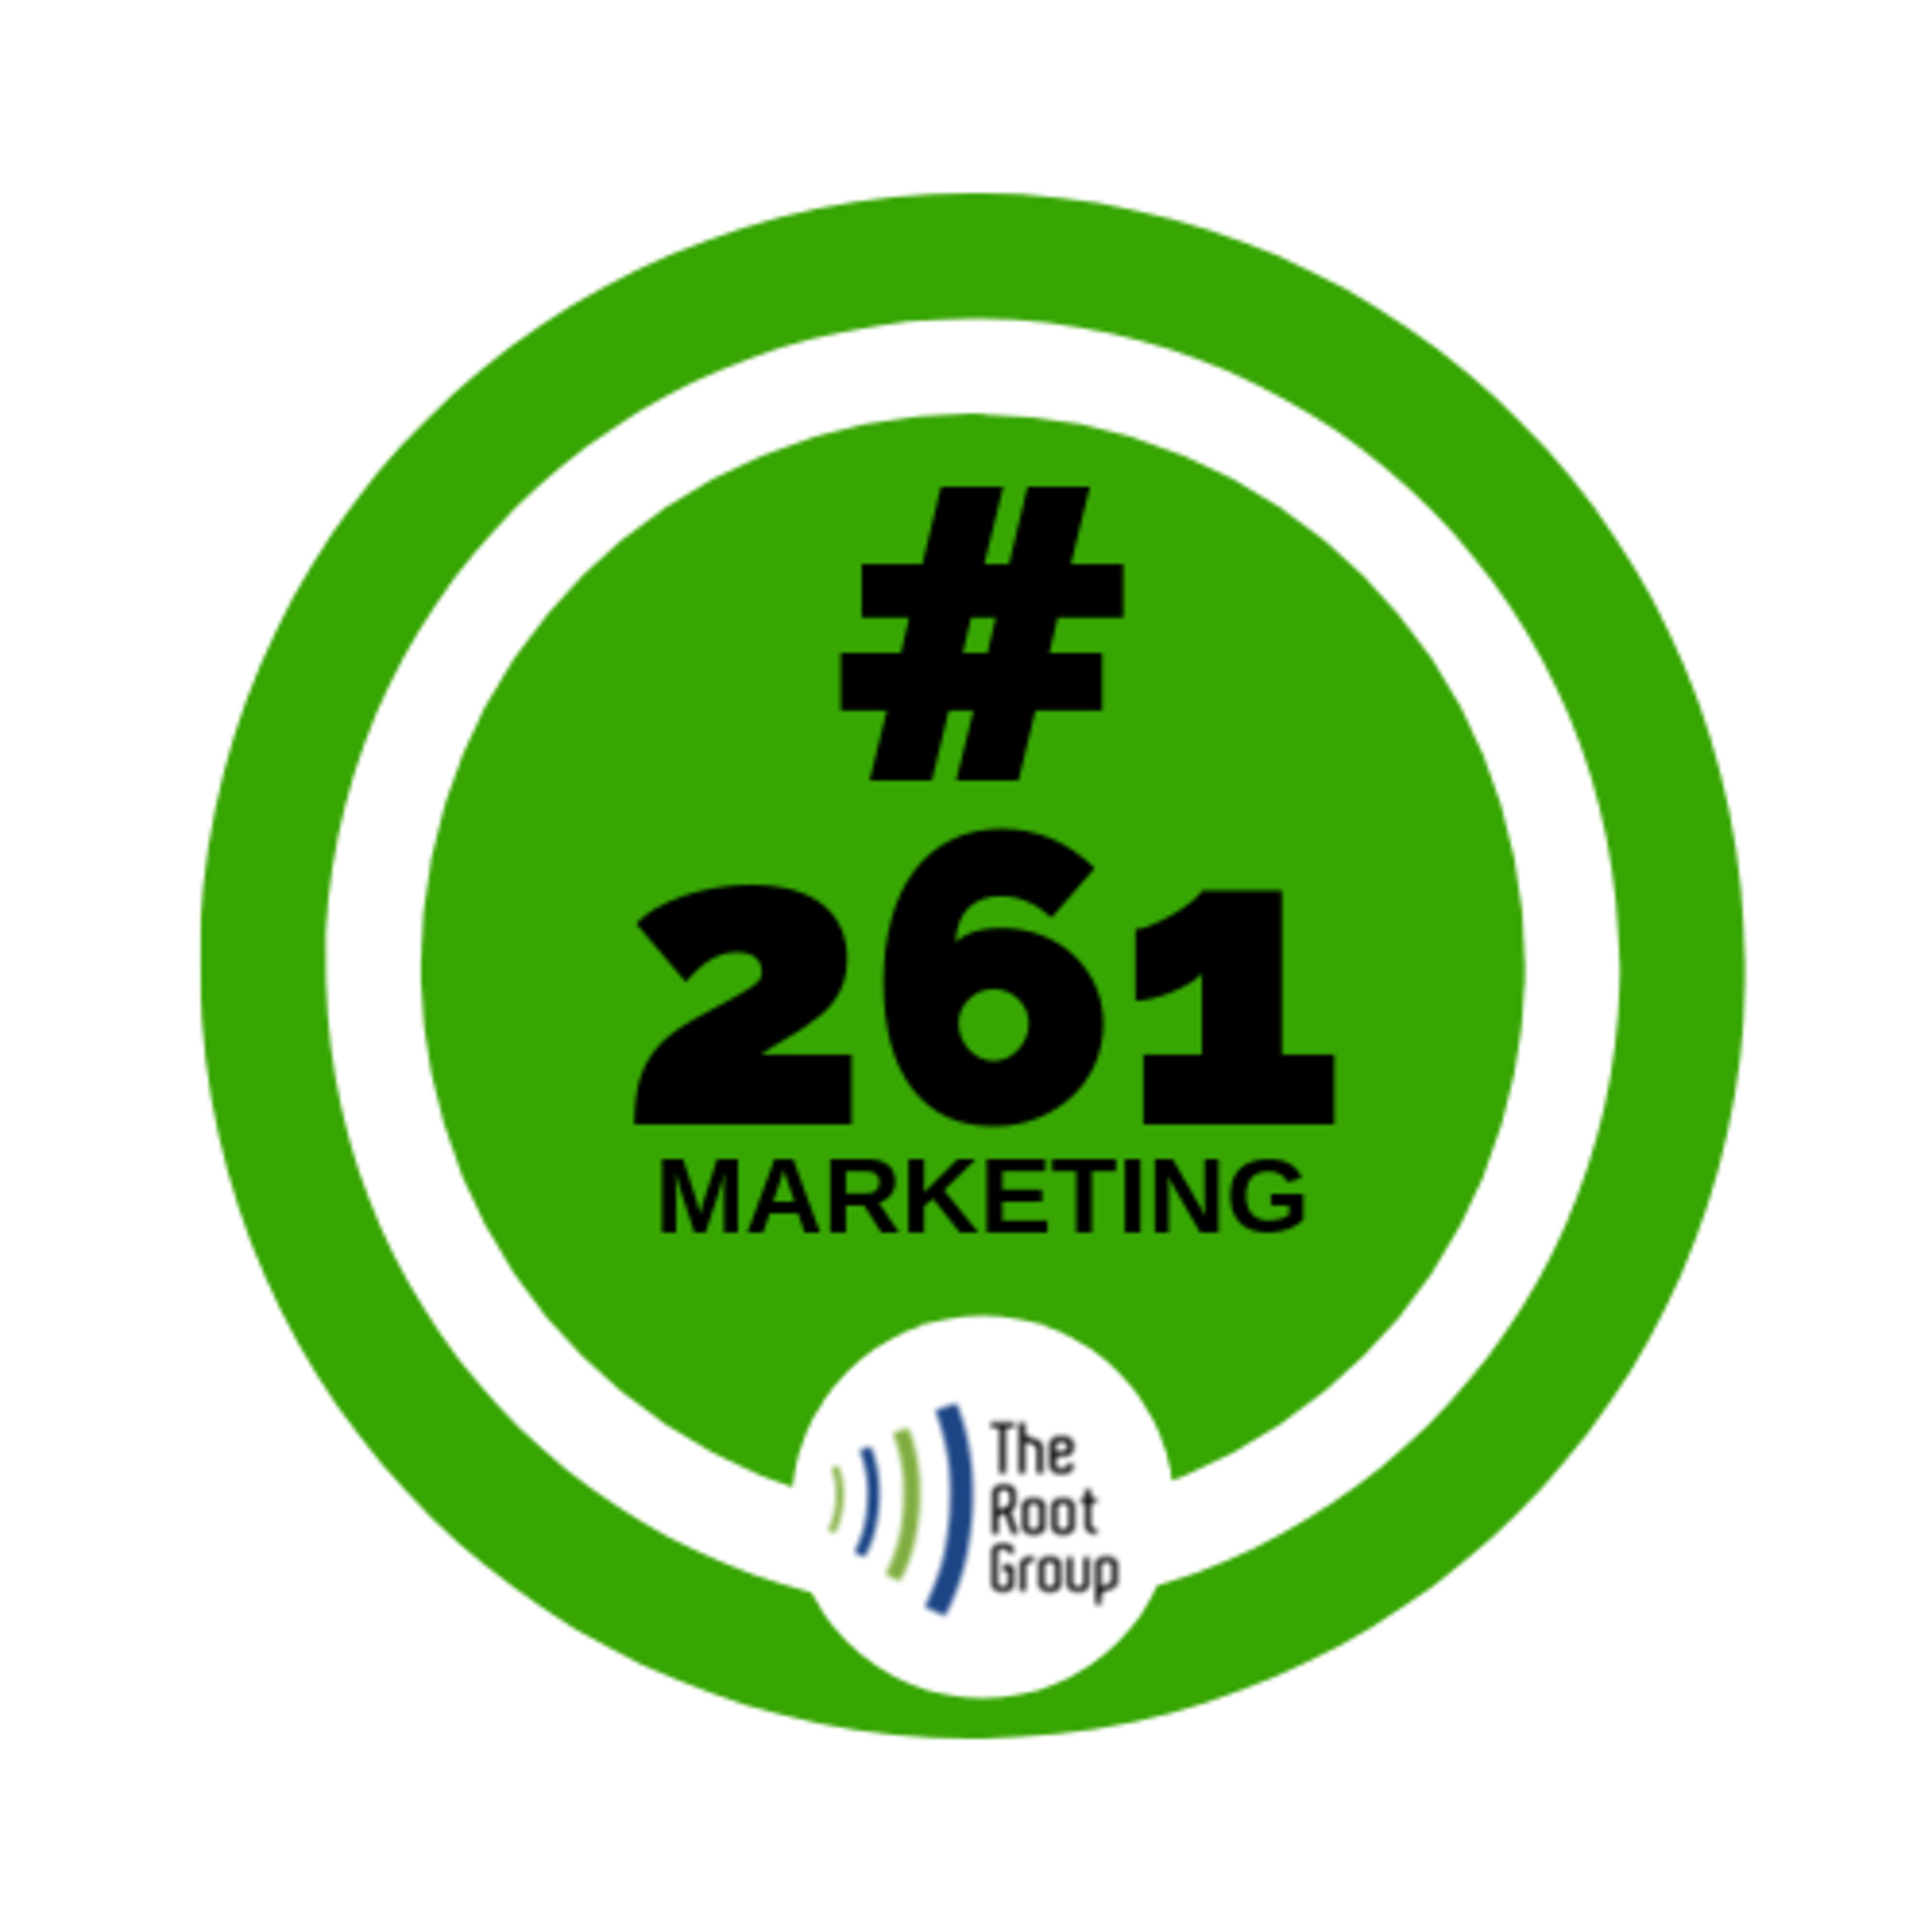 #261Marketing Launch Day